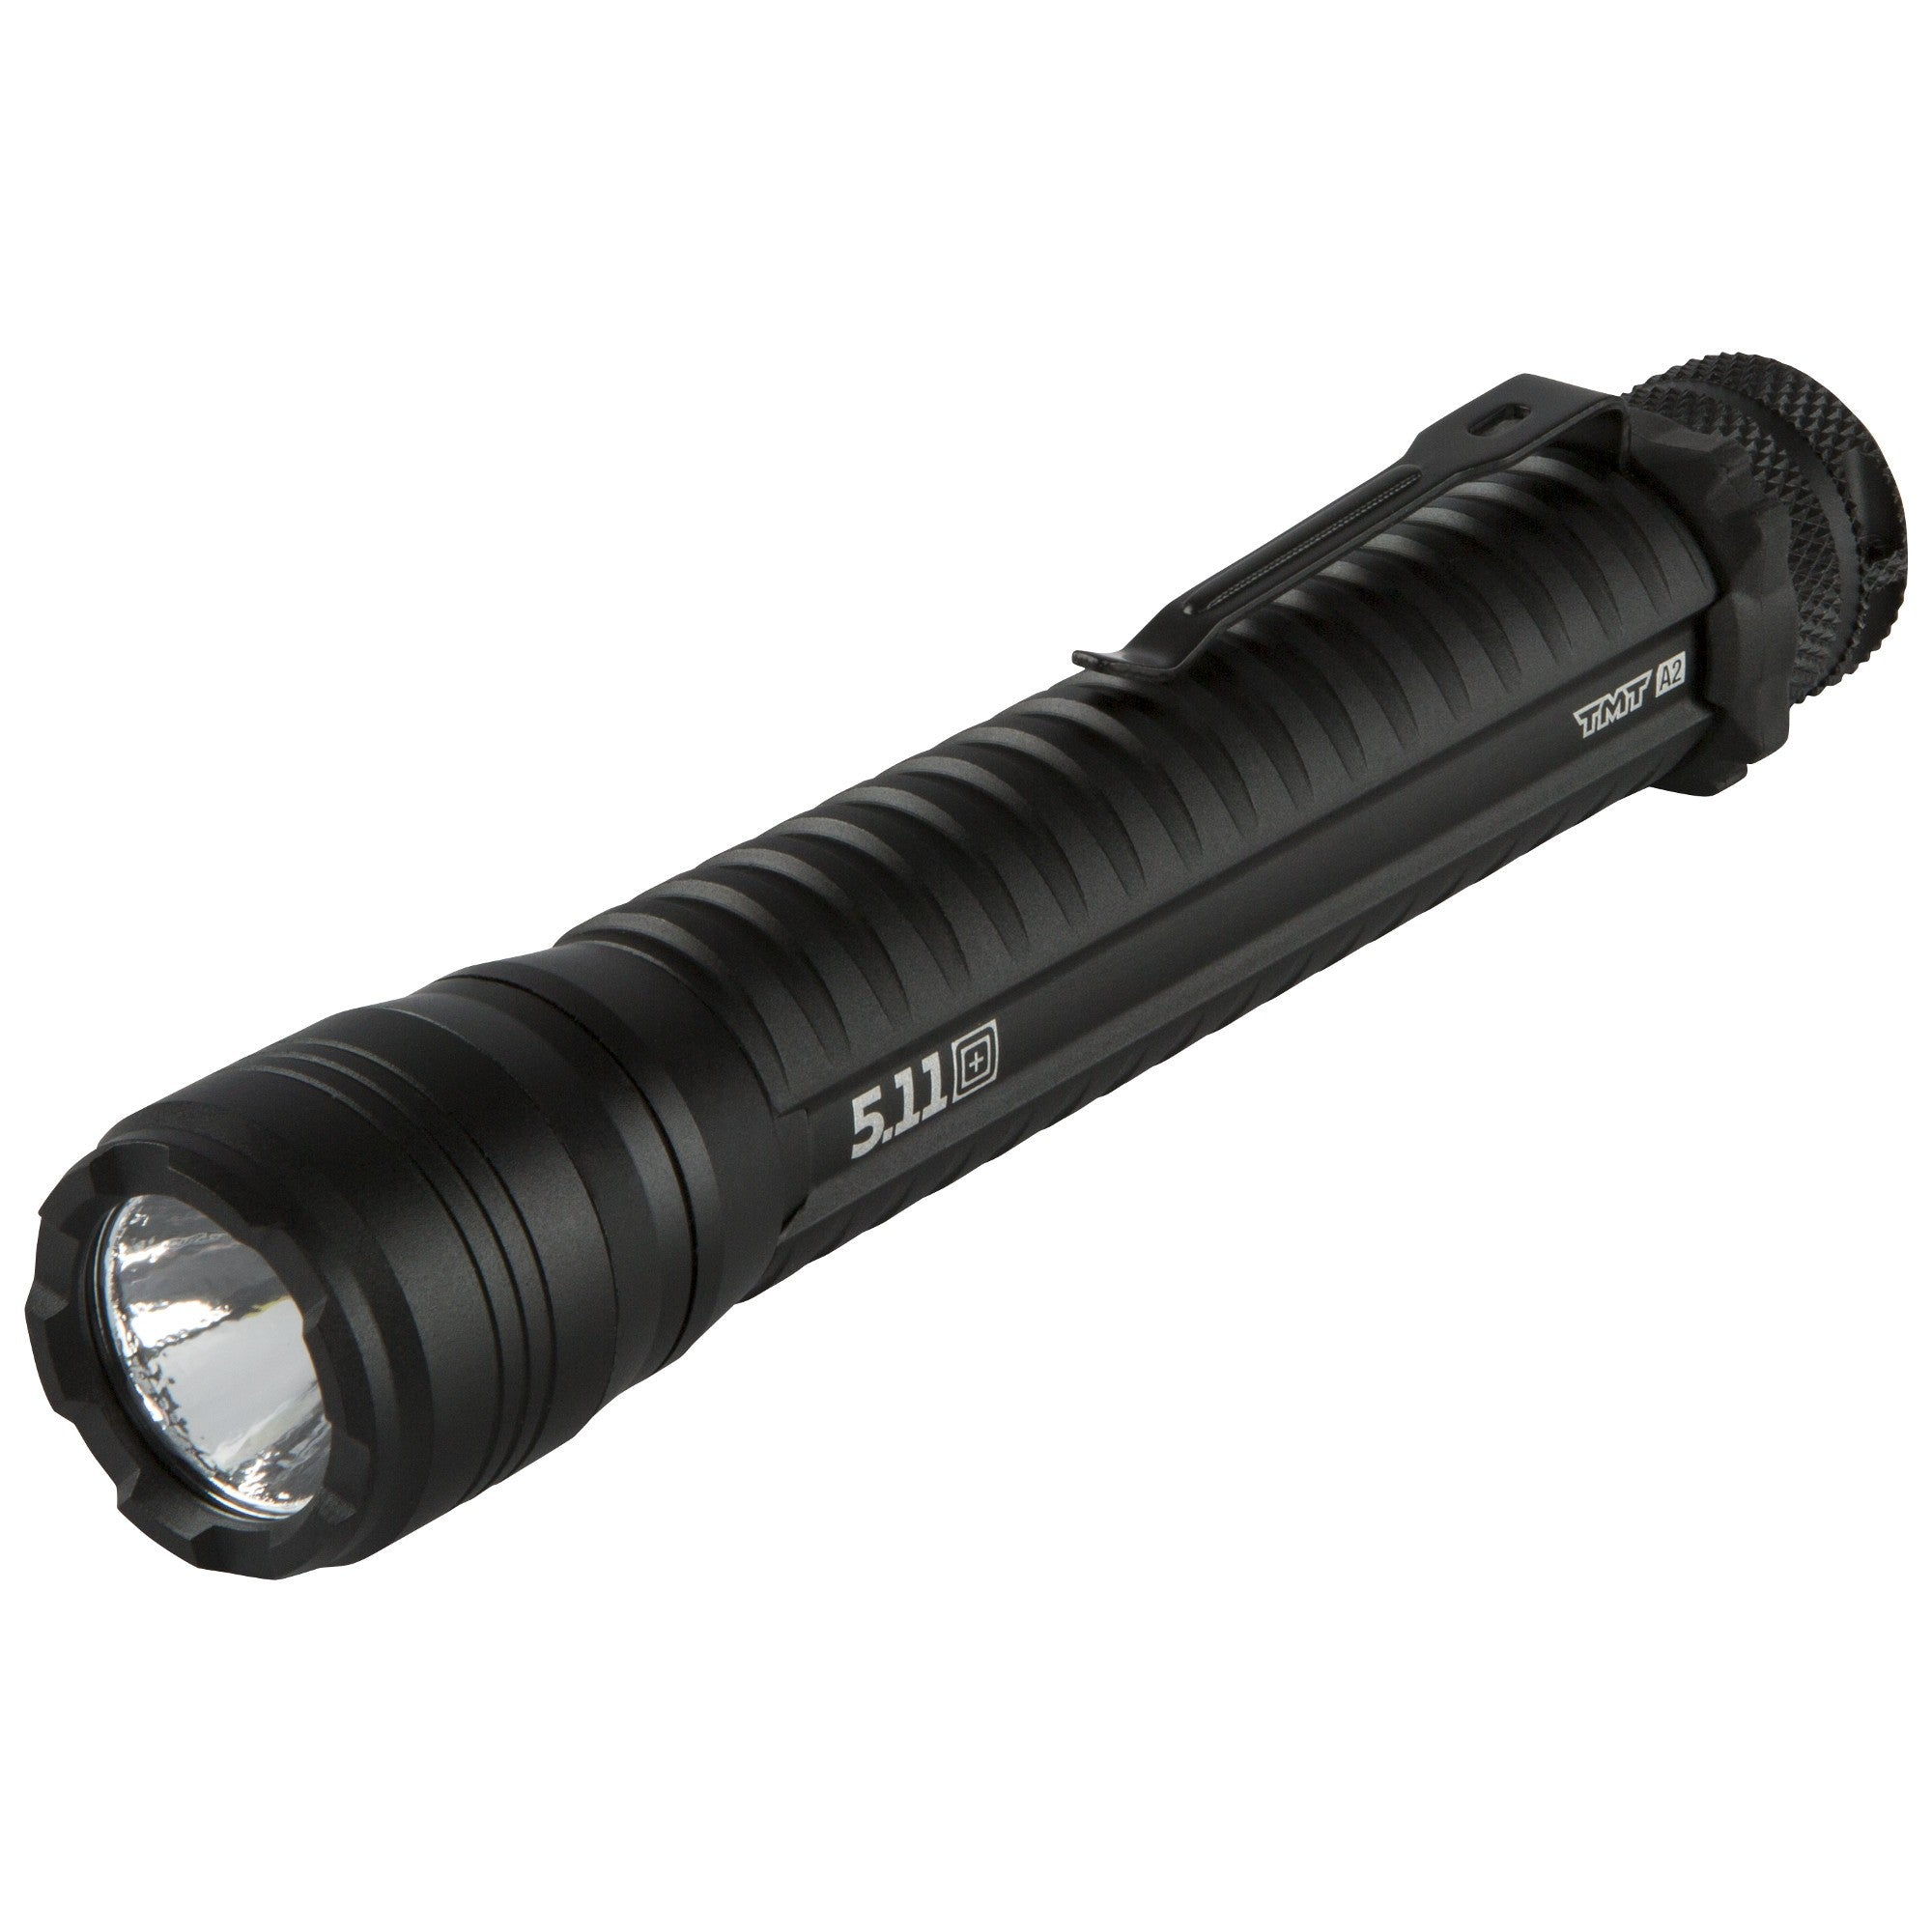 Tmt® A2 Flashlight 53030